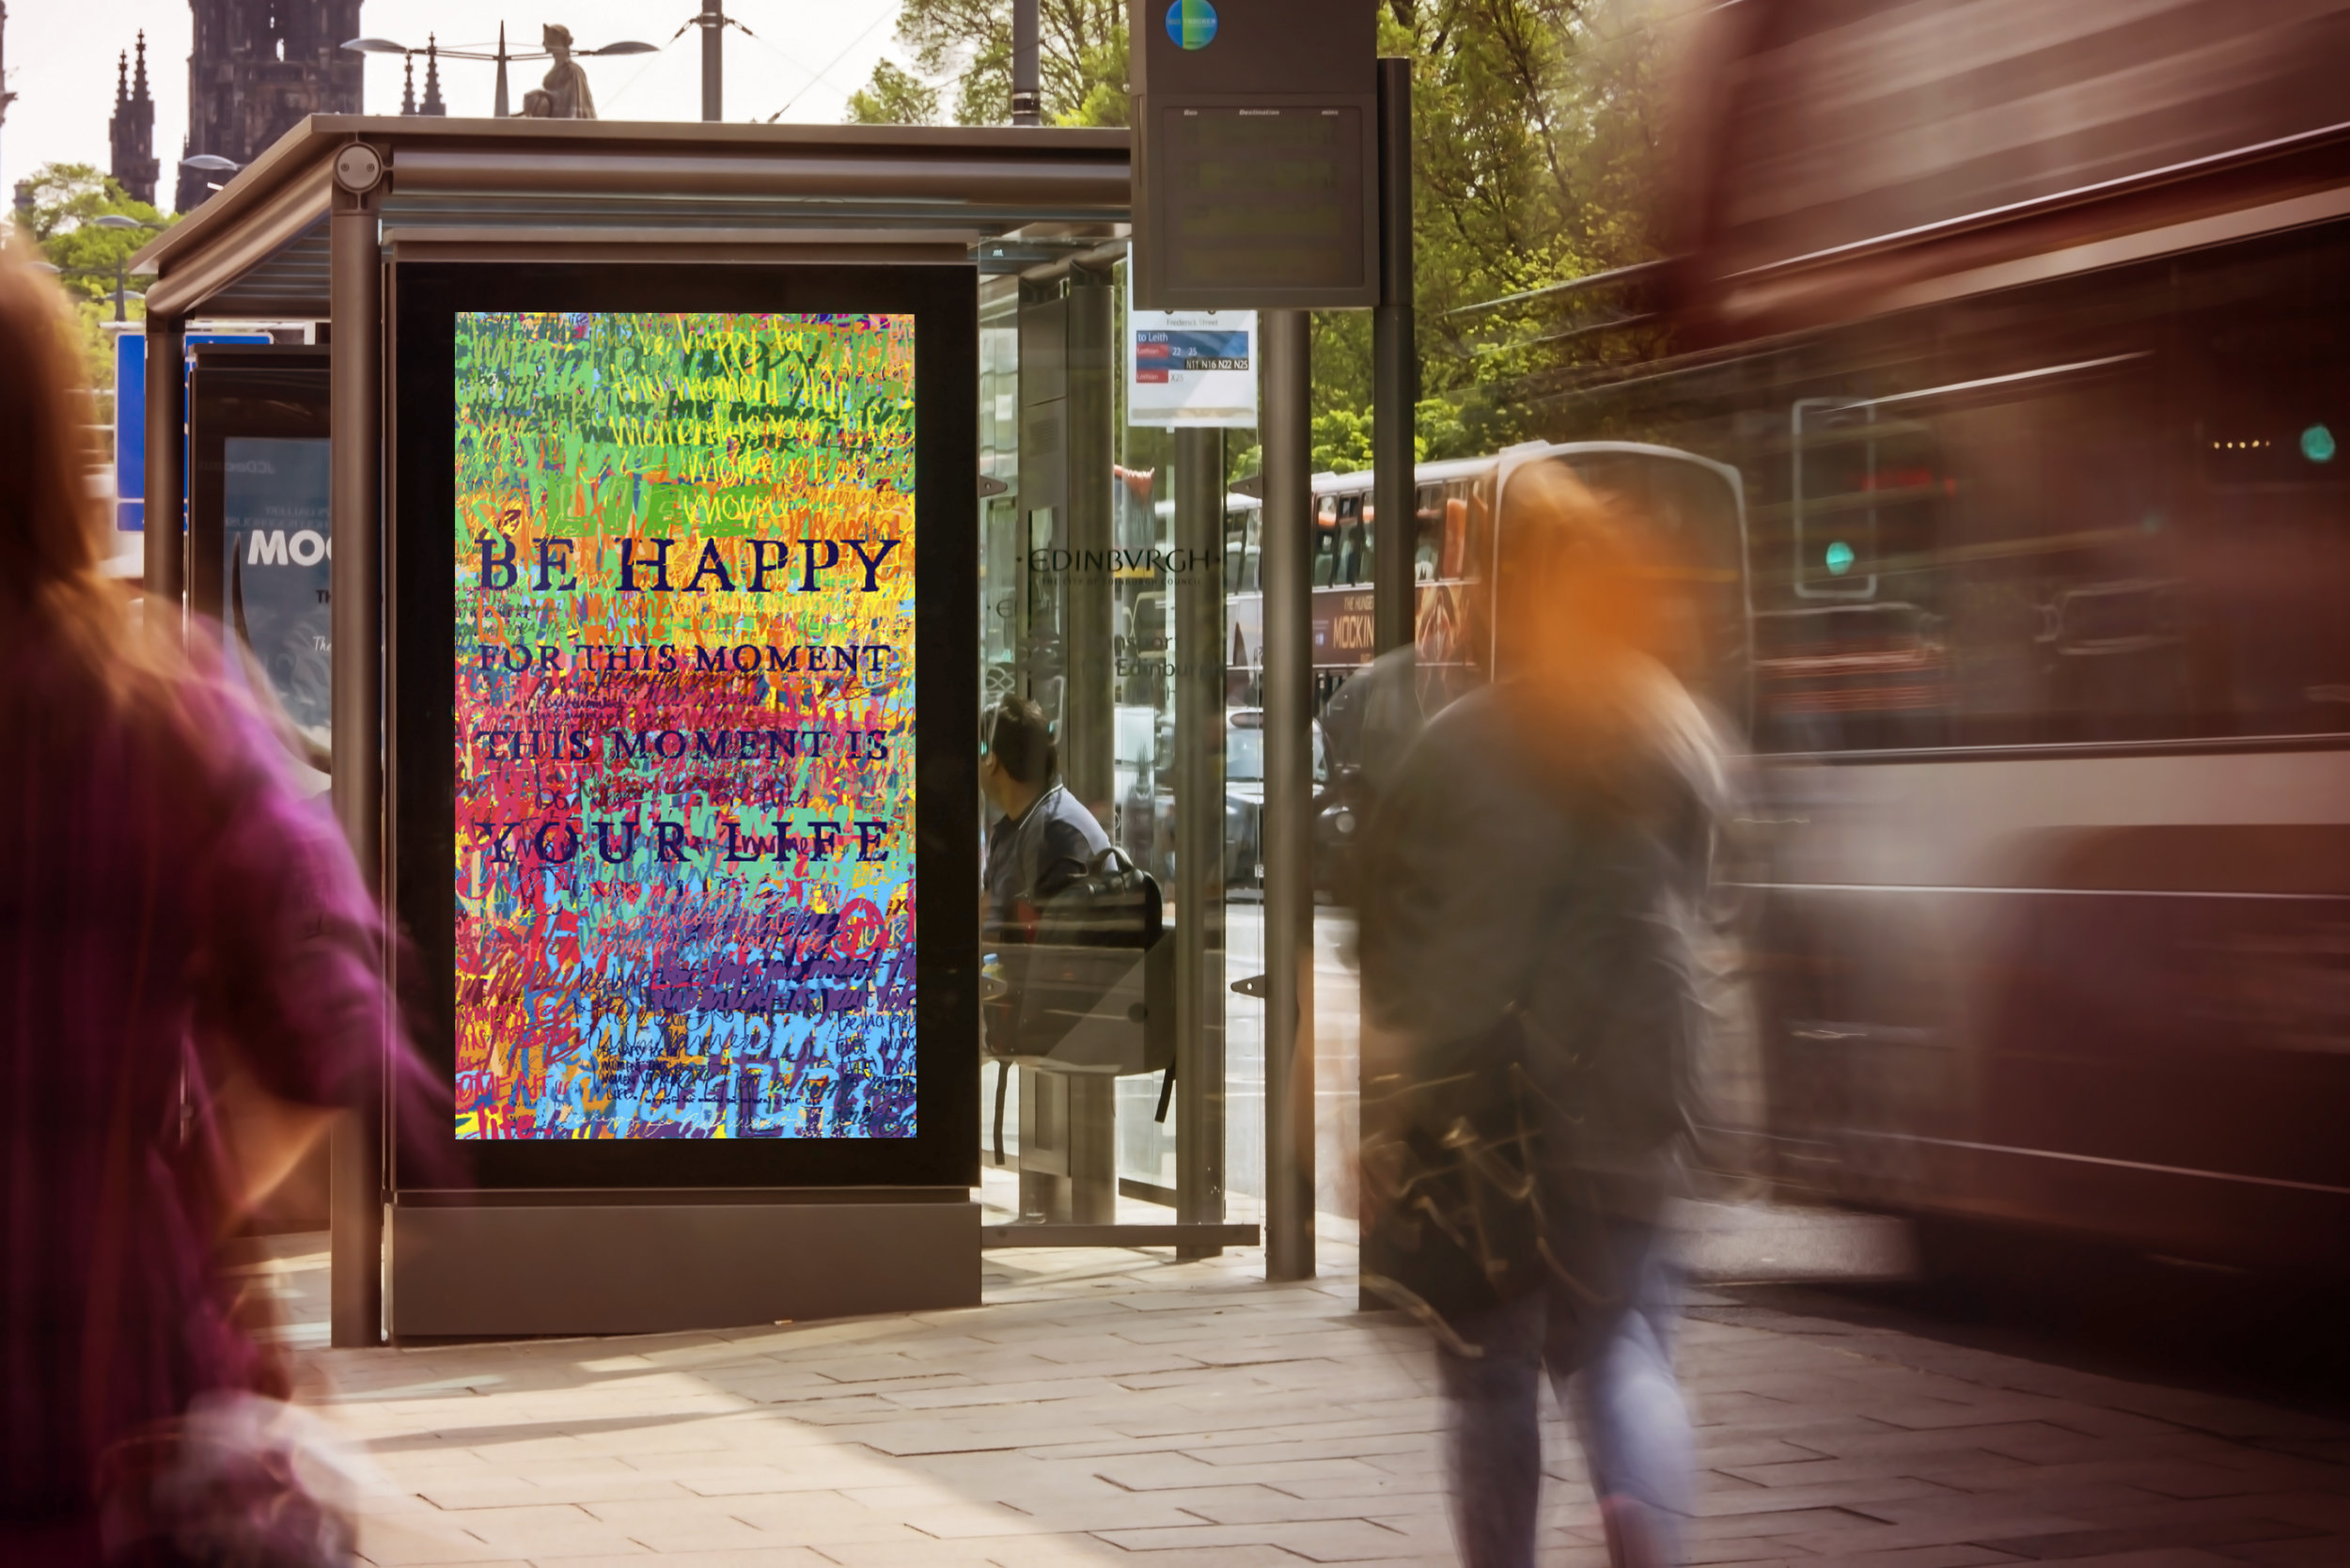 """Public art applied to bus stop advertising with the quote """"Be happy for this moment, this moment is your life."""""""